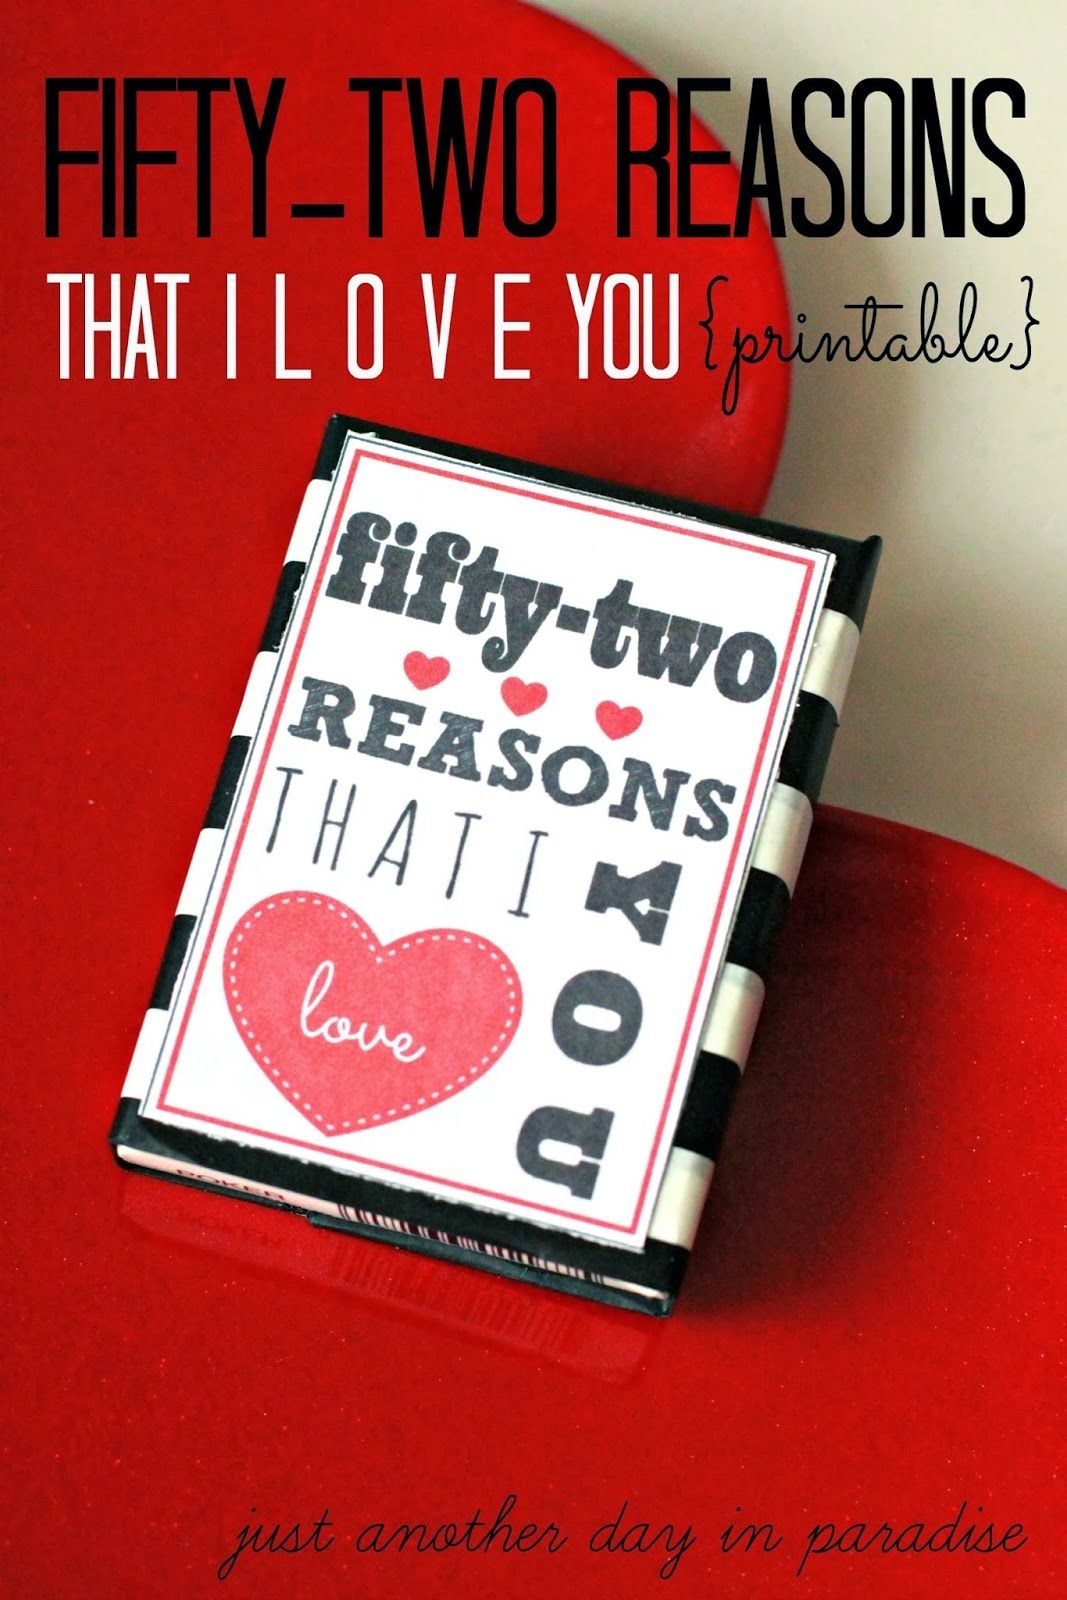 Free Downloadable Templates For The 52 Things I Love About You Cards - 52 Reasons Why I Love You Free Printable Template